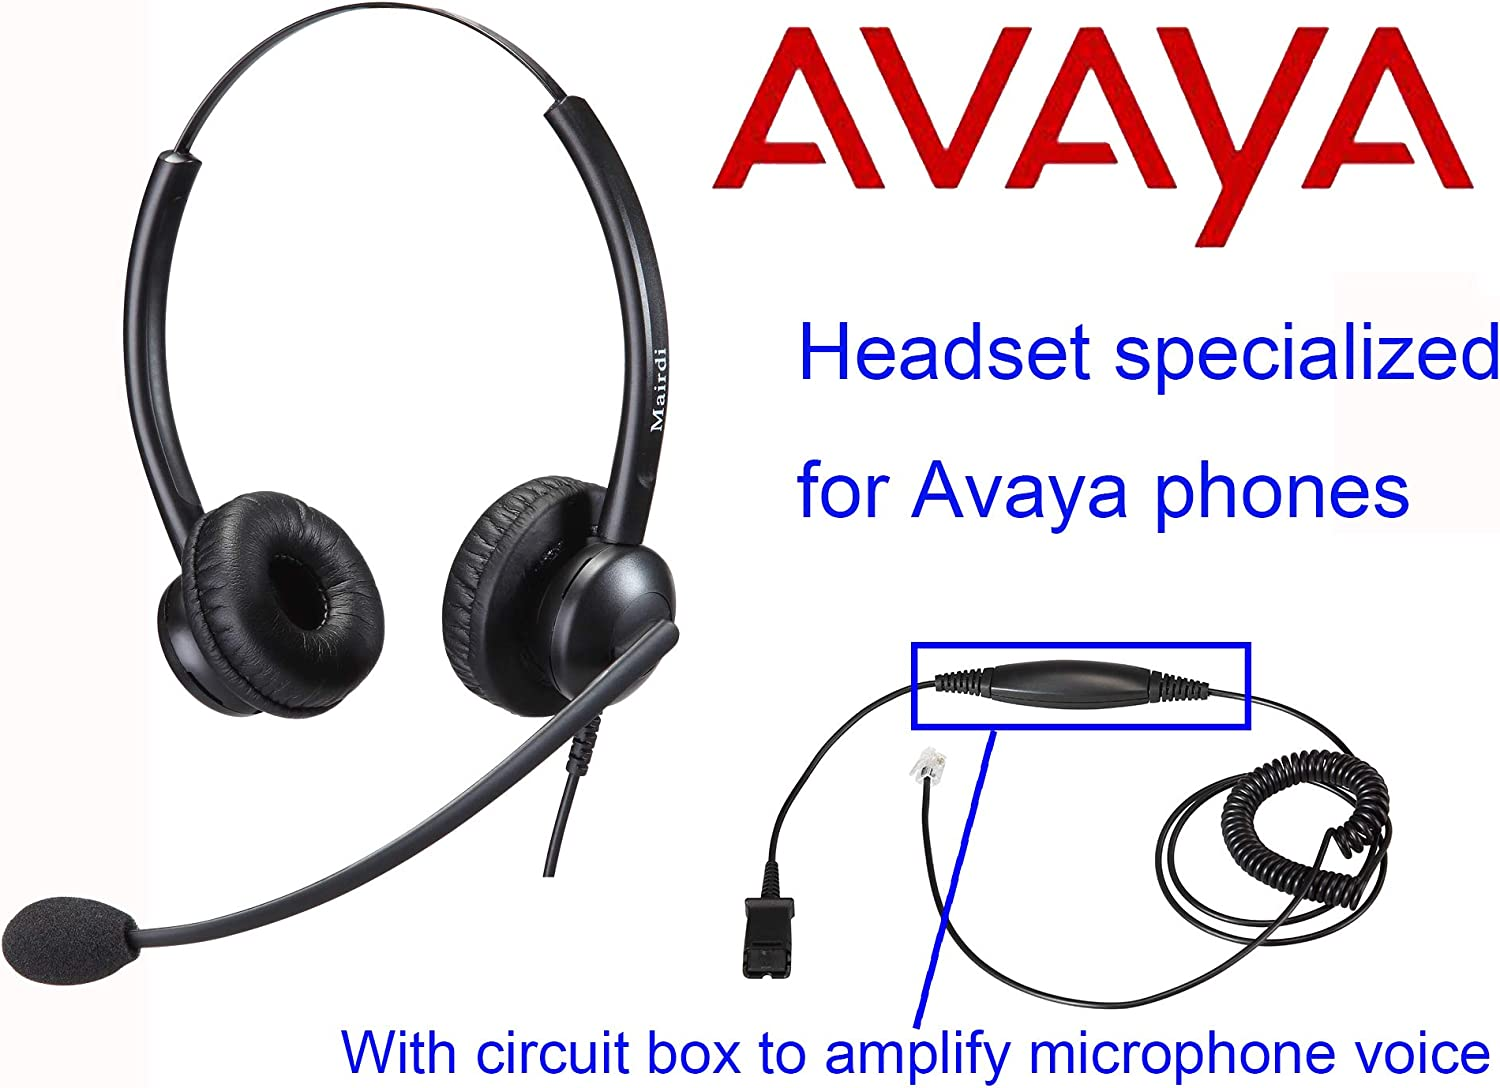 Telephone Headset with Noise Cancelling Microphone /& HIS Cable for Avaya IP 1608 1616 9601 9608 9611 9611G 9620 9621 9630 9631 9640 9641 9650 9670 J139